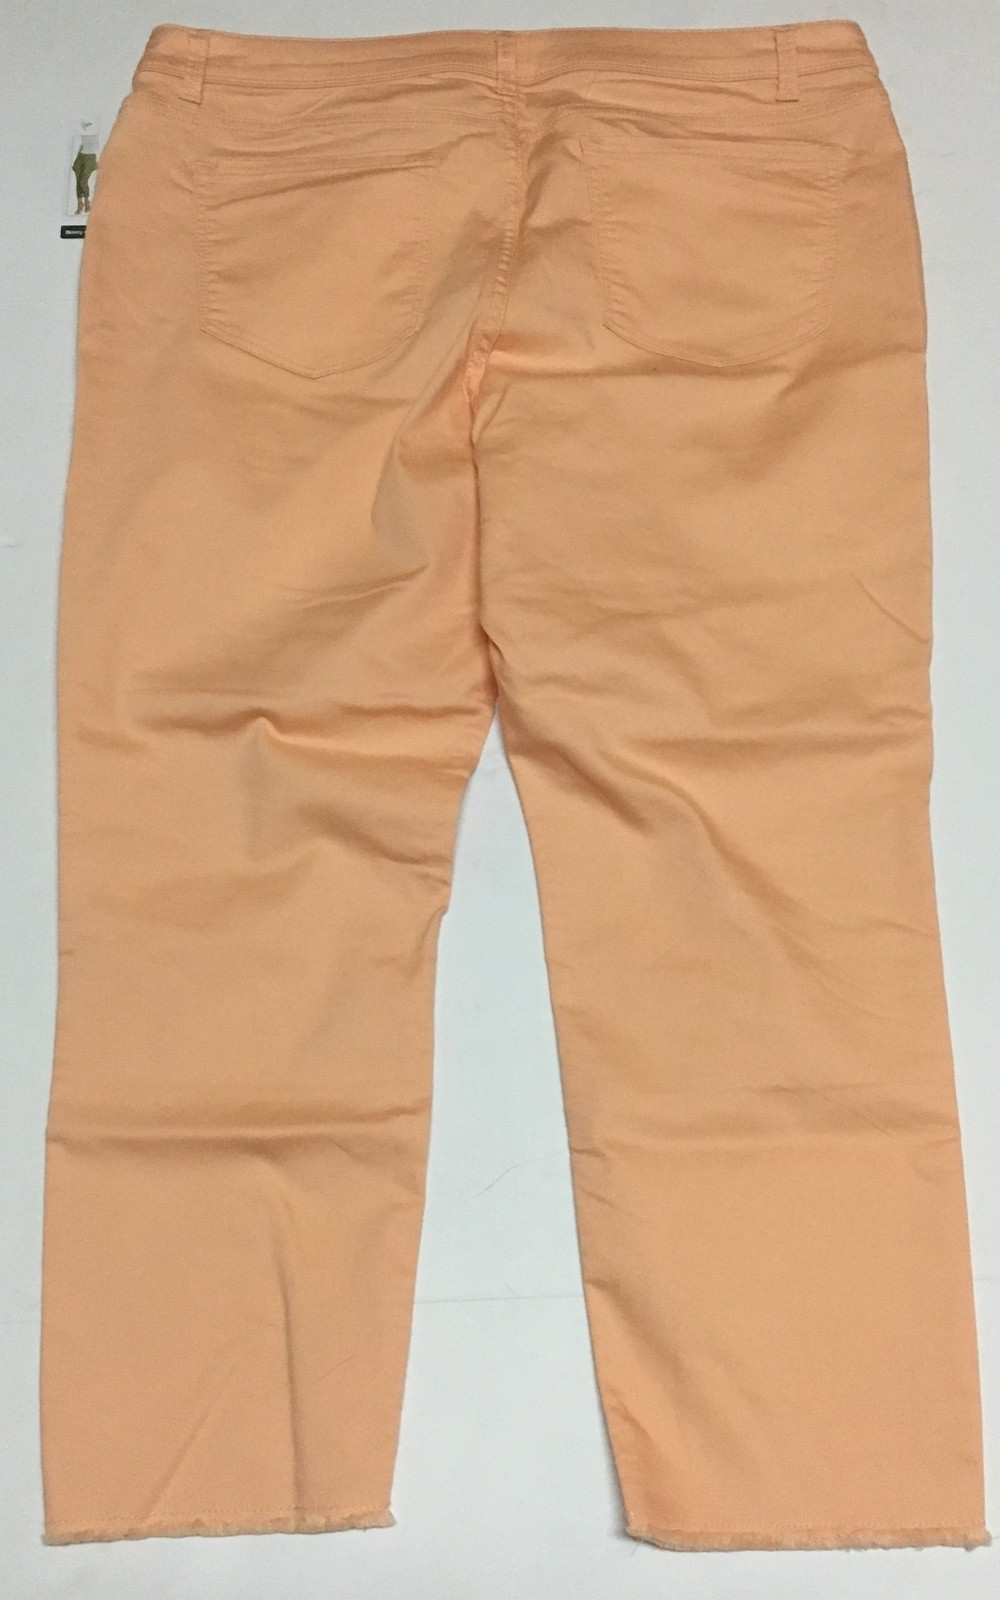 Women's Ankle Pants Cropped Coral Denim Sz 18 Time & Tru NWT